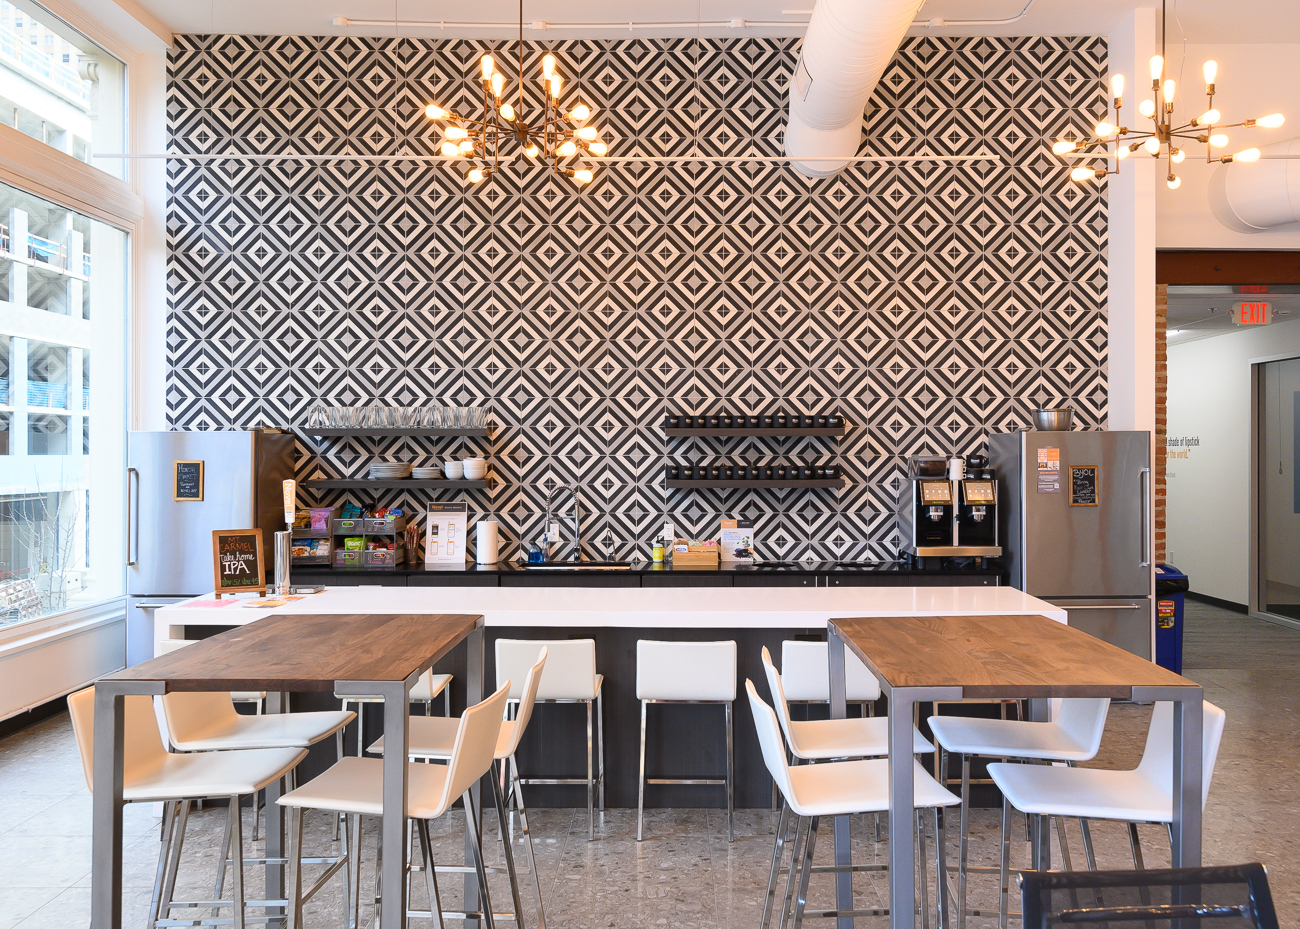 The communal kitchen is located in the open coworking area. An espresso machine and local draft beer are included for members. / Image: Phil Armstrong, Cincinnati Refined // Published: 2.11.20